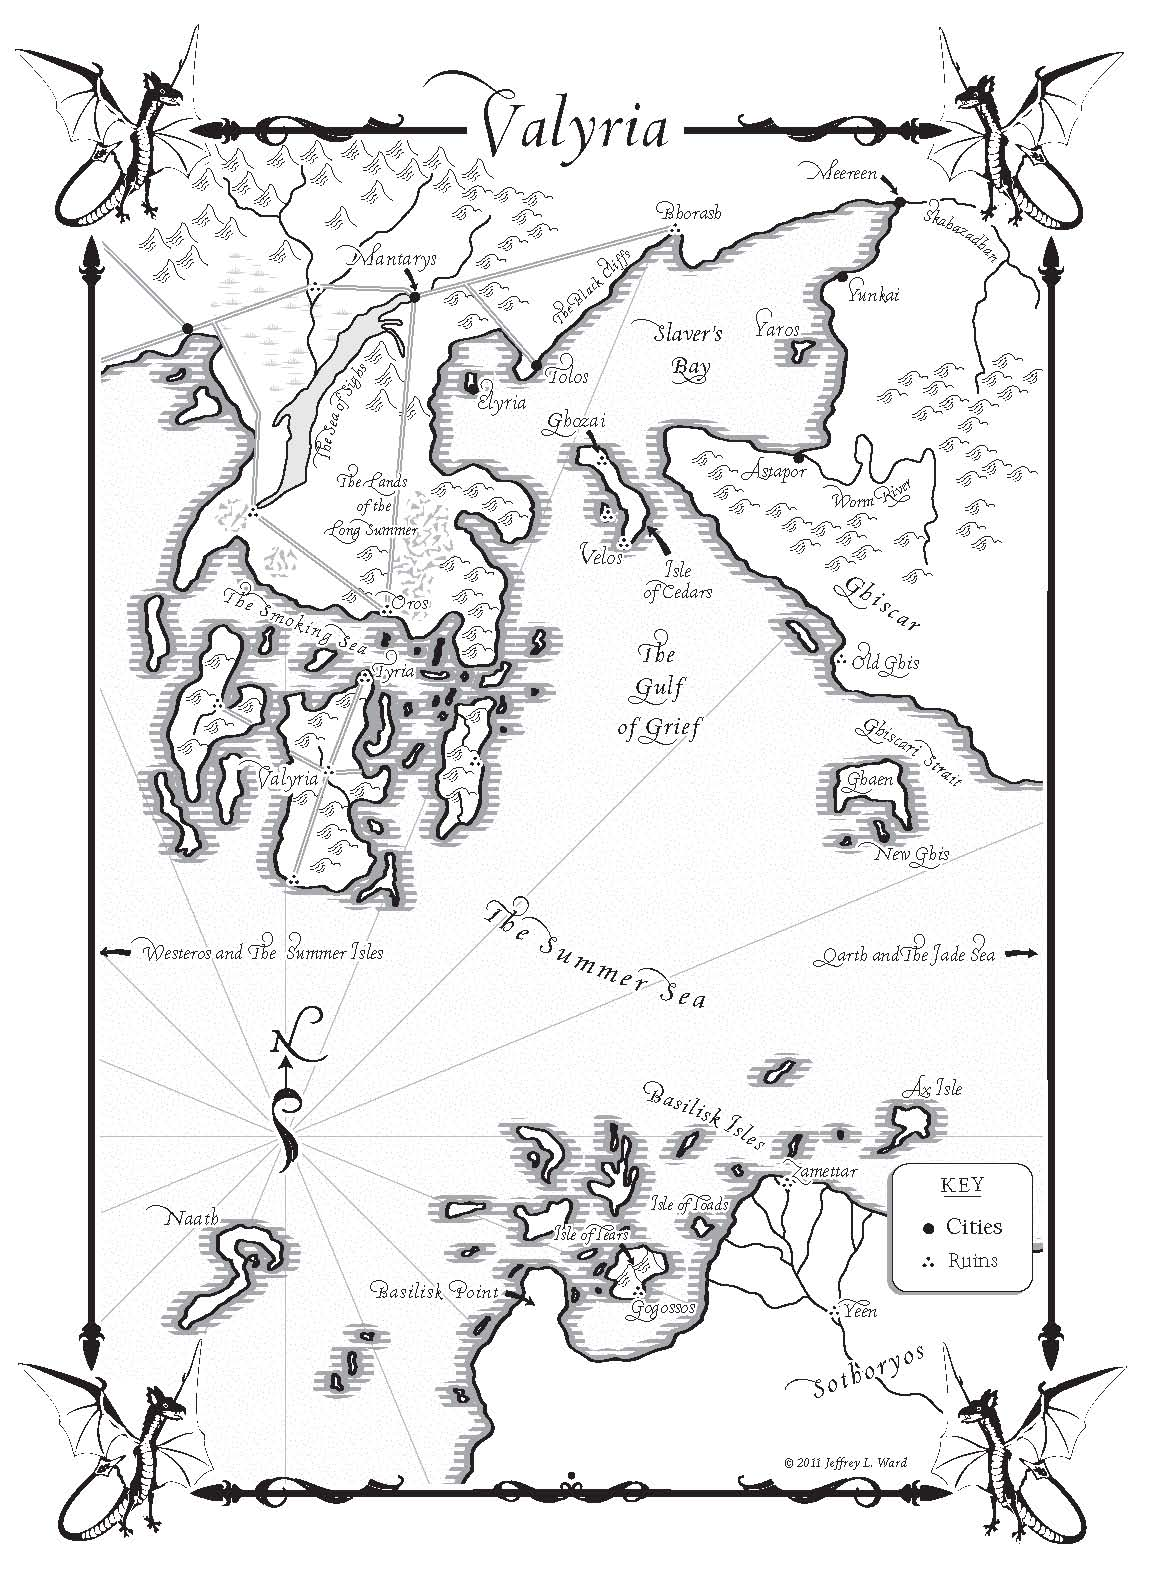 Game Of Thrones Map Pdf : thrones, Thrones, Family, Faction, Character, Trees, Poster, Quite, Suspicious